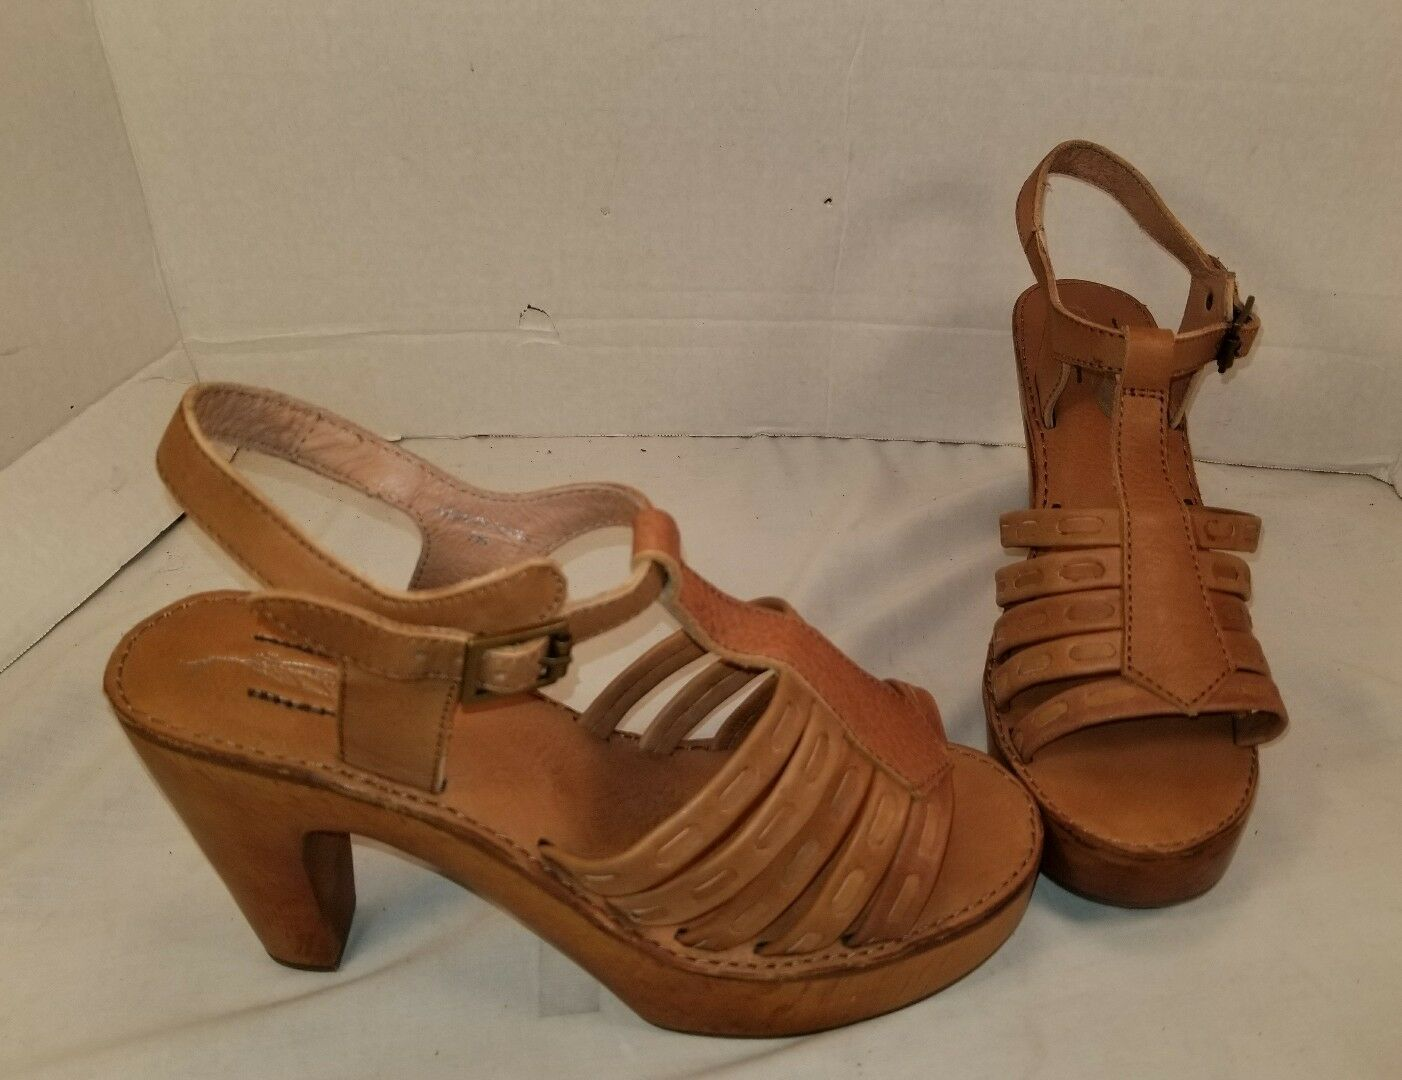 NEW FREE PEOPLE X JEFFREY CAMPBELL HAVEN TAN LEATHER CLOGS SHOES US 7